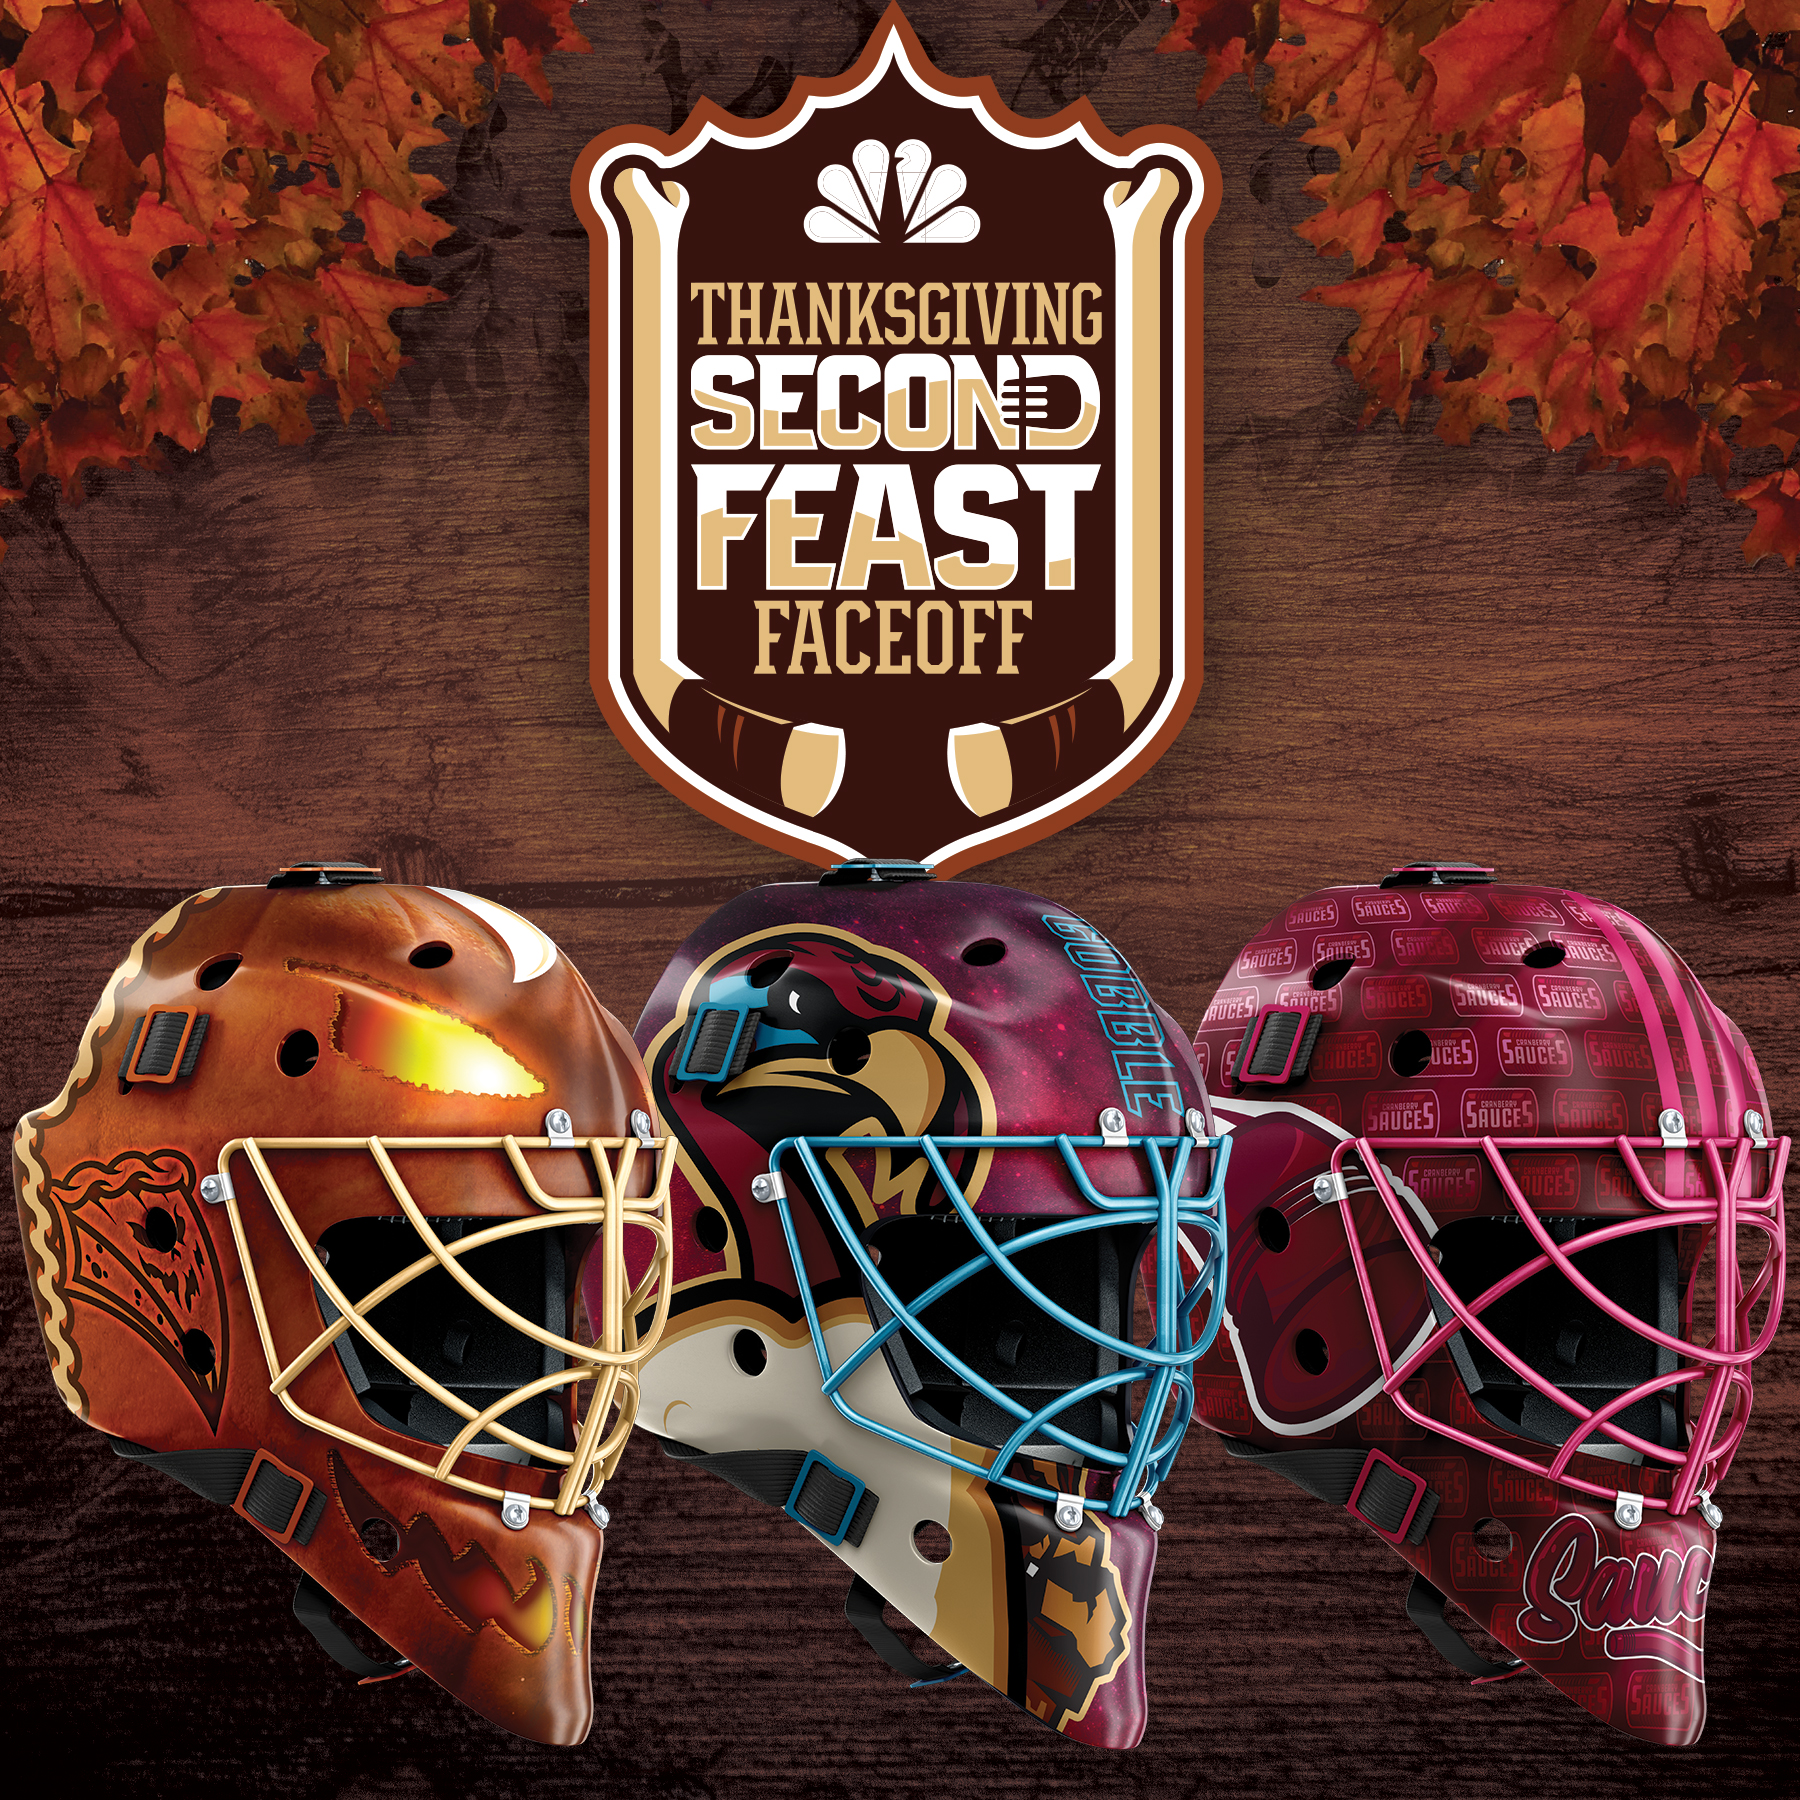 NBC Sports Thanksgiving Second Feast Face-Off